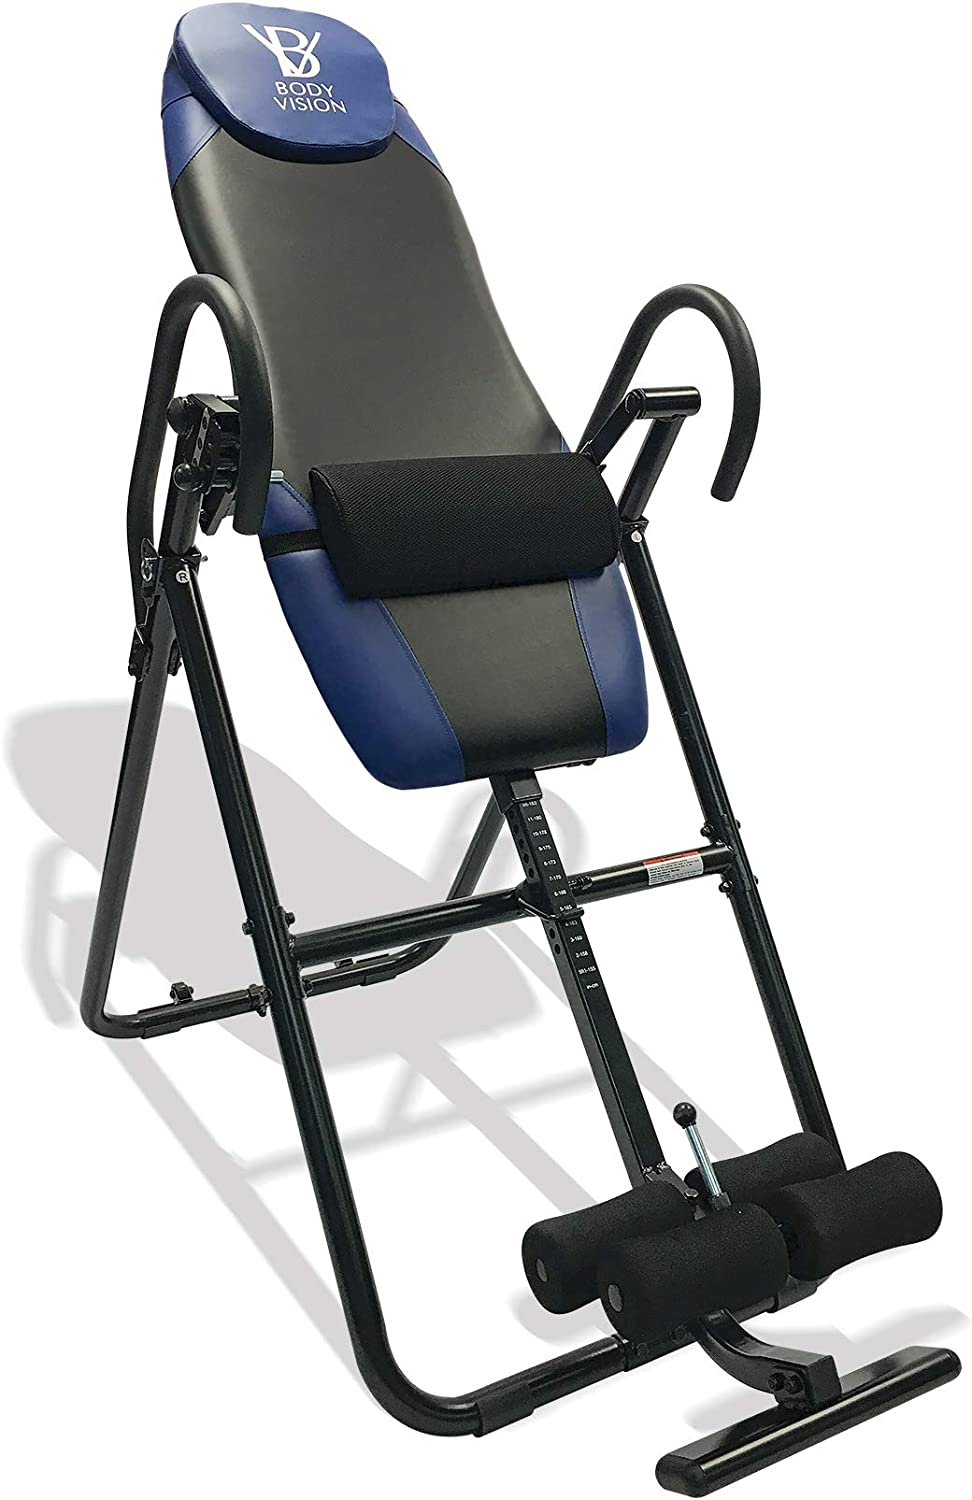 Body Vision IT9825 Premium Inversion Table with Adjustable Head Pillow Lumbar Support Pad, Blue – Heavy Duty up to 250 lbs